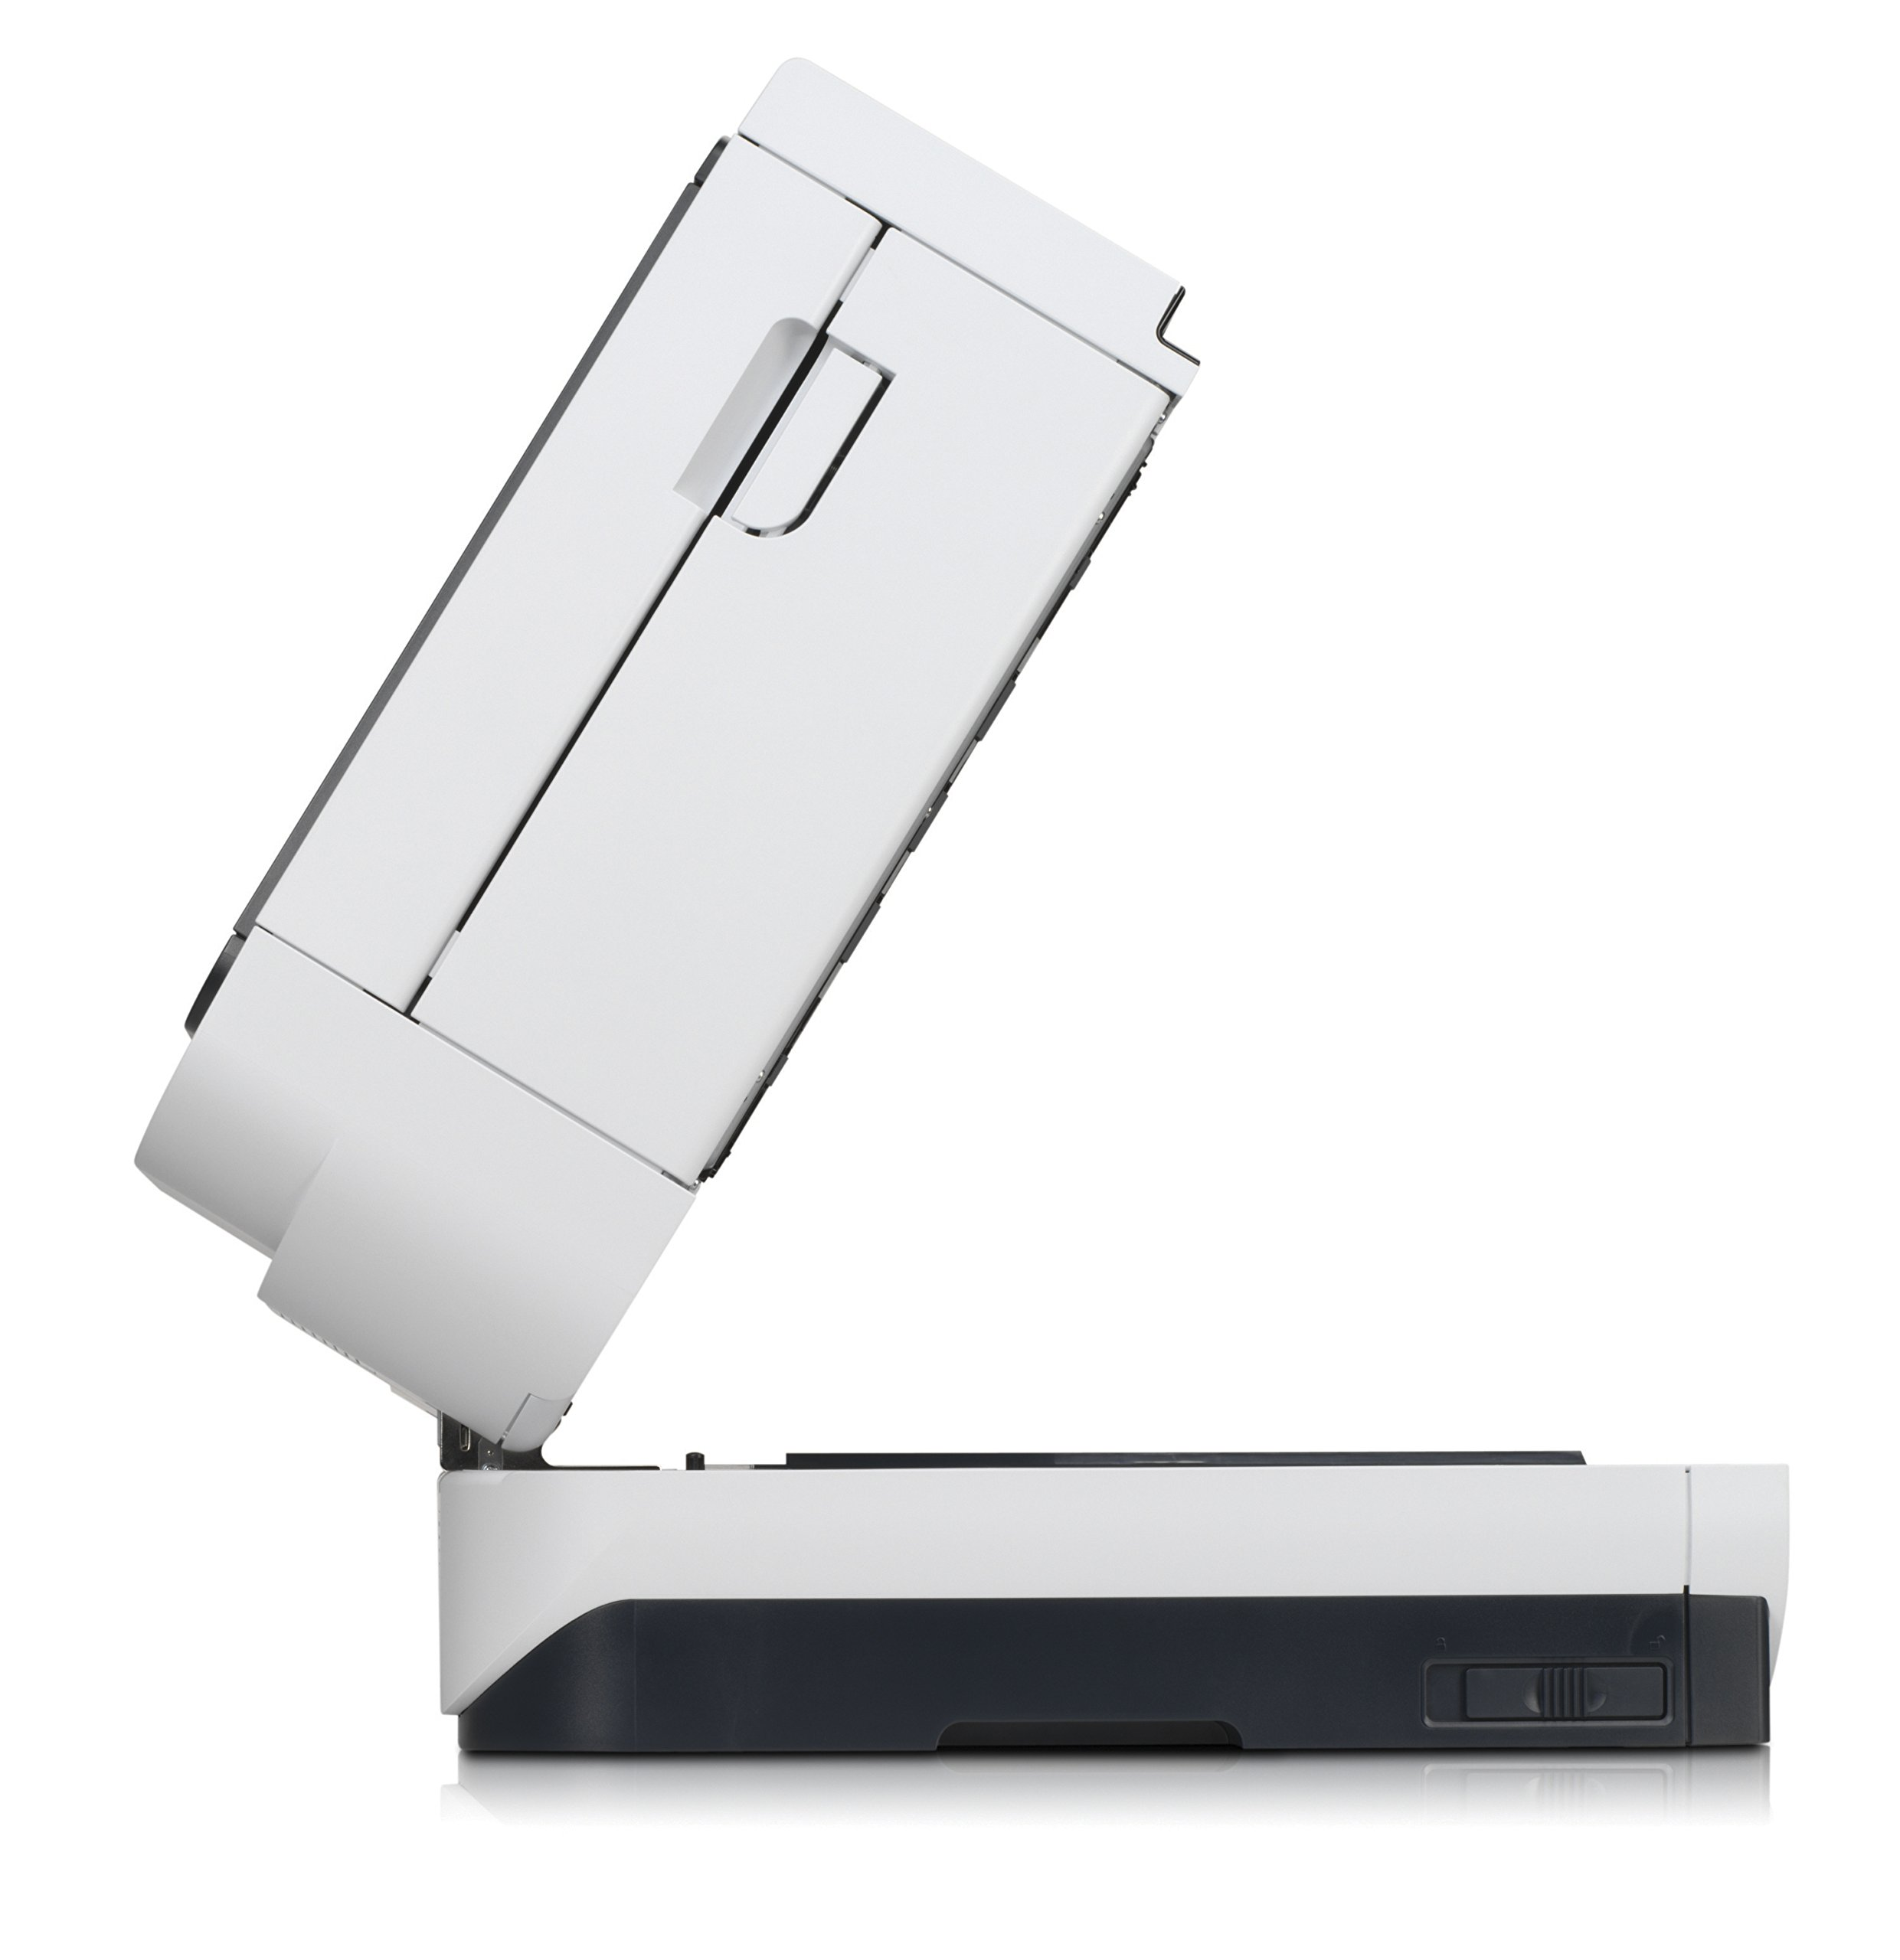 HP ScanJet Enterprise Flow N9120 Flatbed OCR Scanner by HP (Image #3)